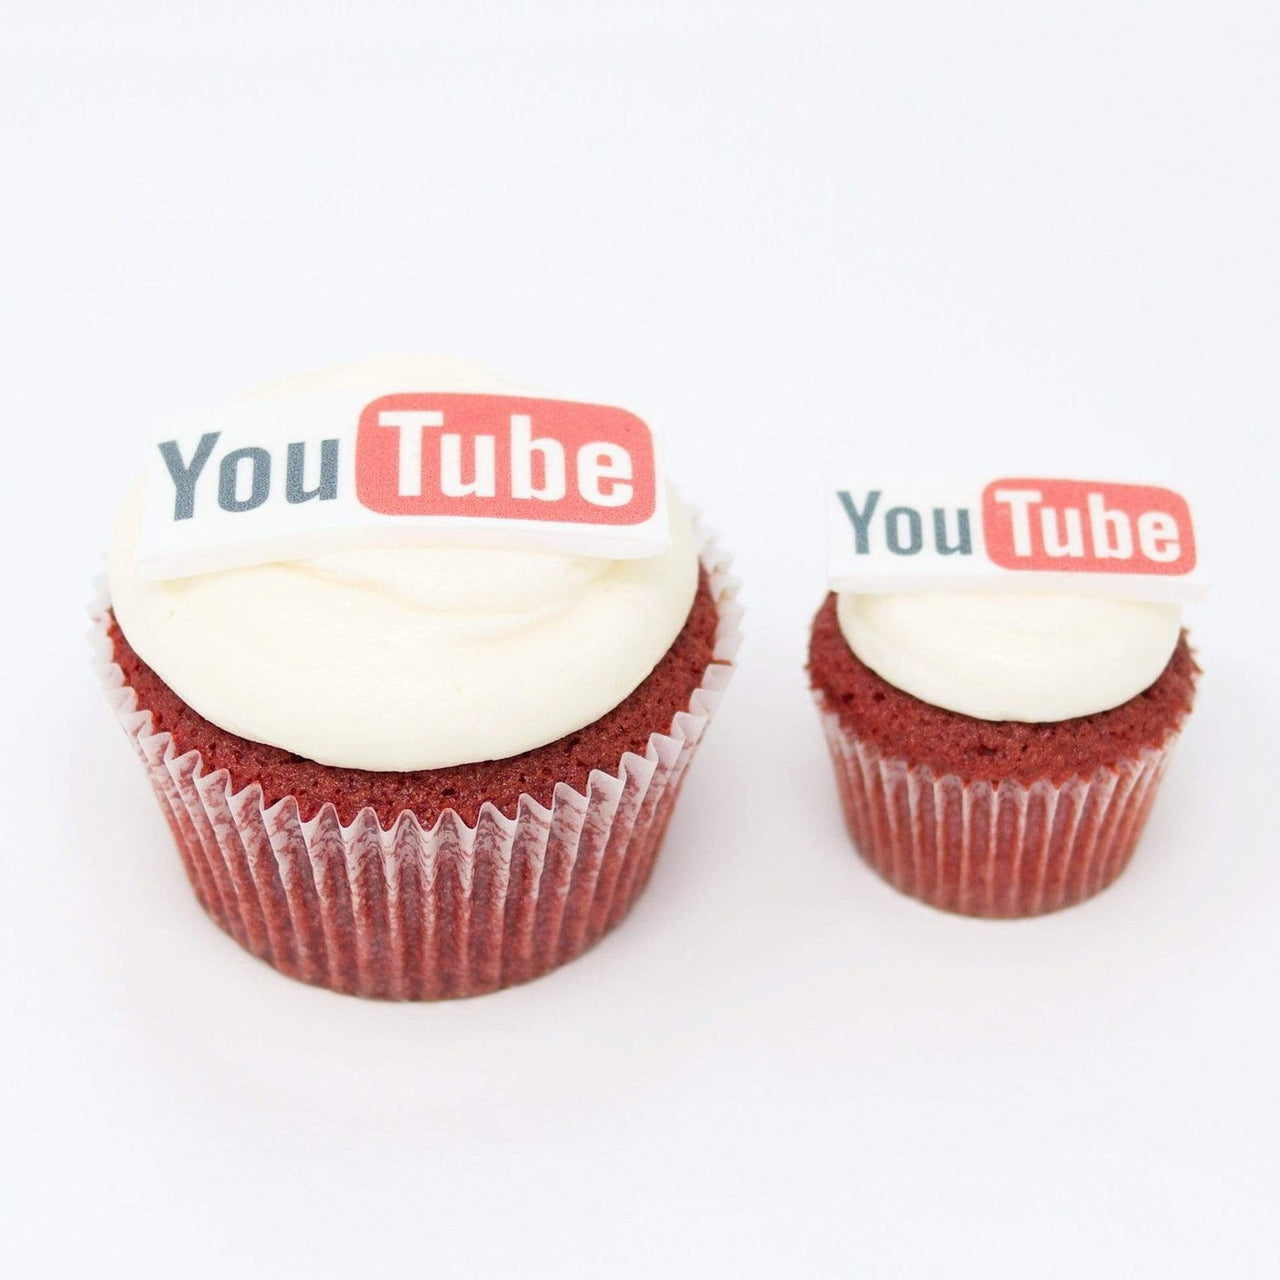 Red velvet cupcakes with printed edible logos